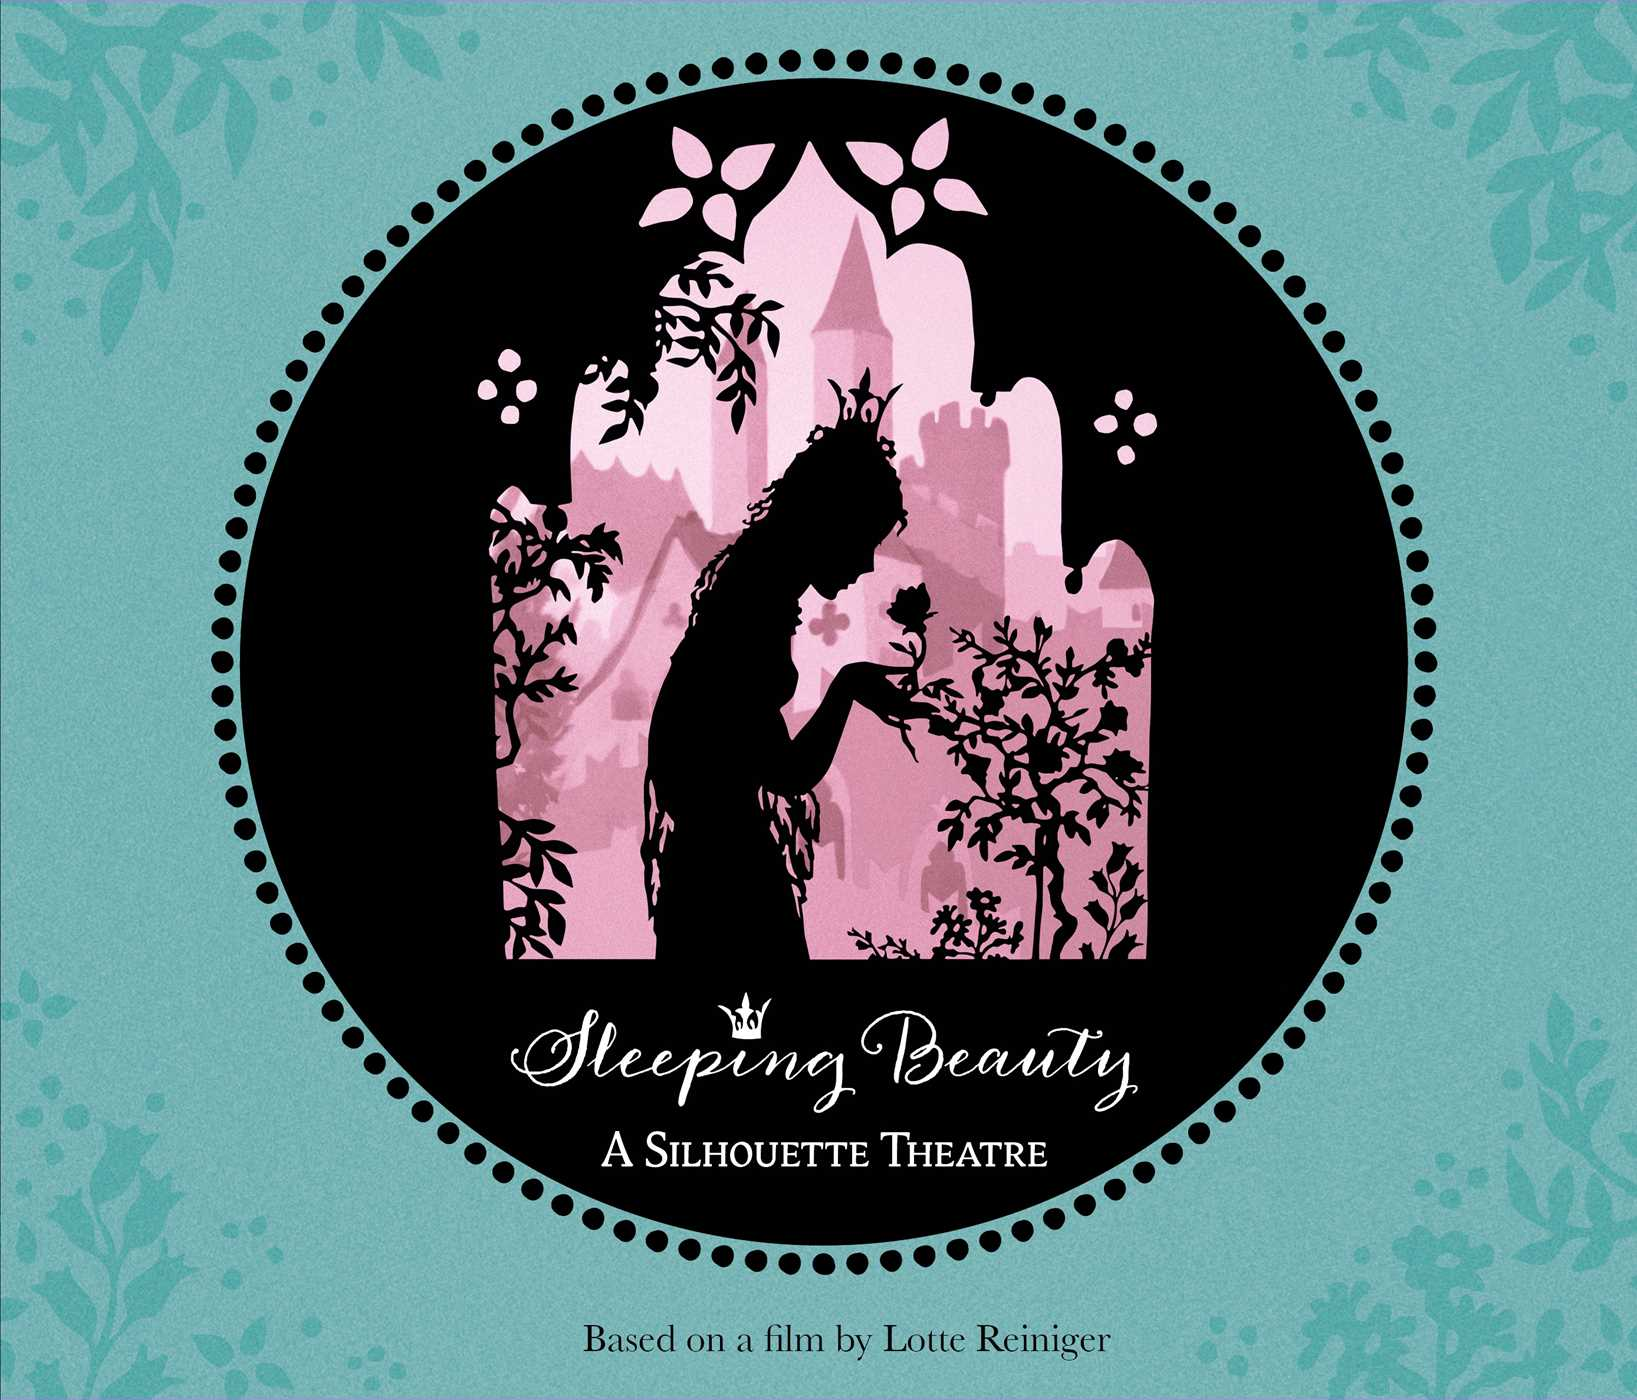 Silhouette theatre sleeping beauty 9781471146206 hr